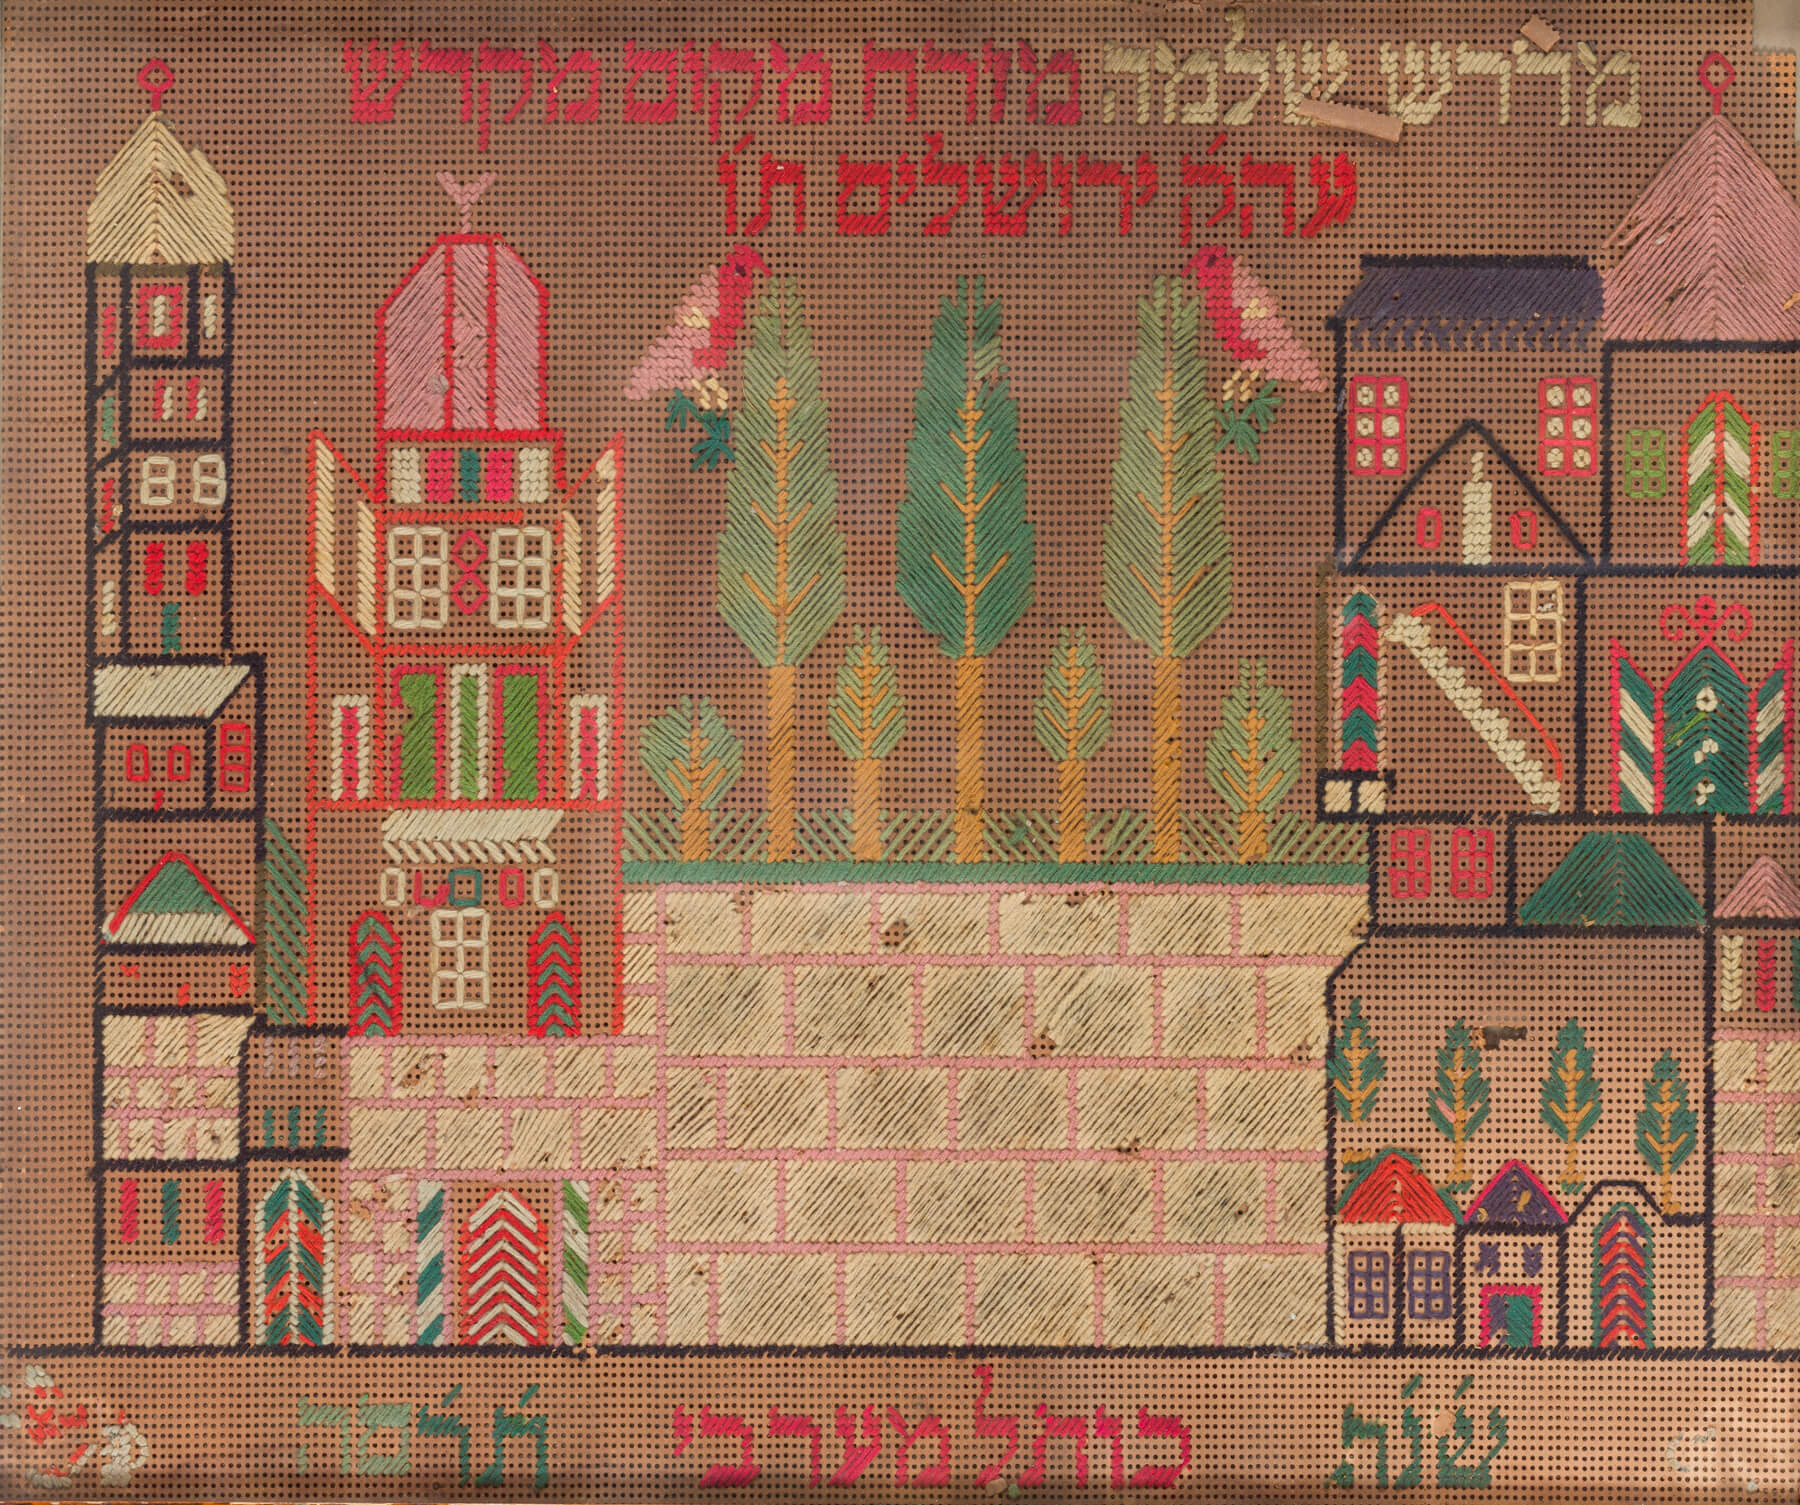 070. An Embroidery/Sampler of the Kotel